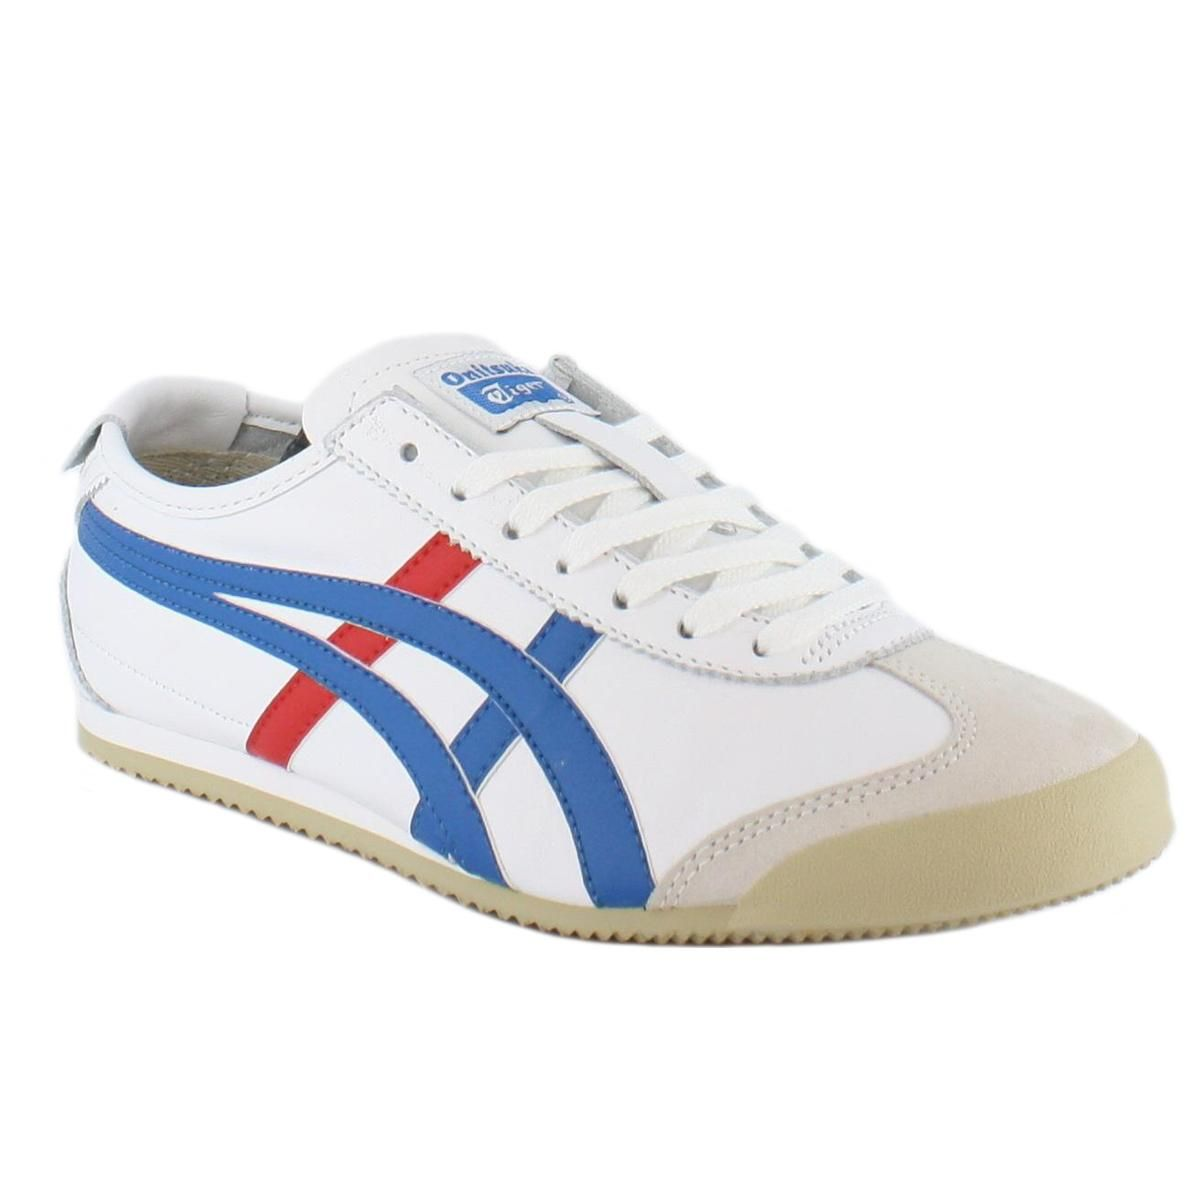 new product 171c7 17137 Onitsuka Tiger   My trainers   Shoes, Sneakers, New shoes